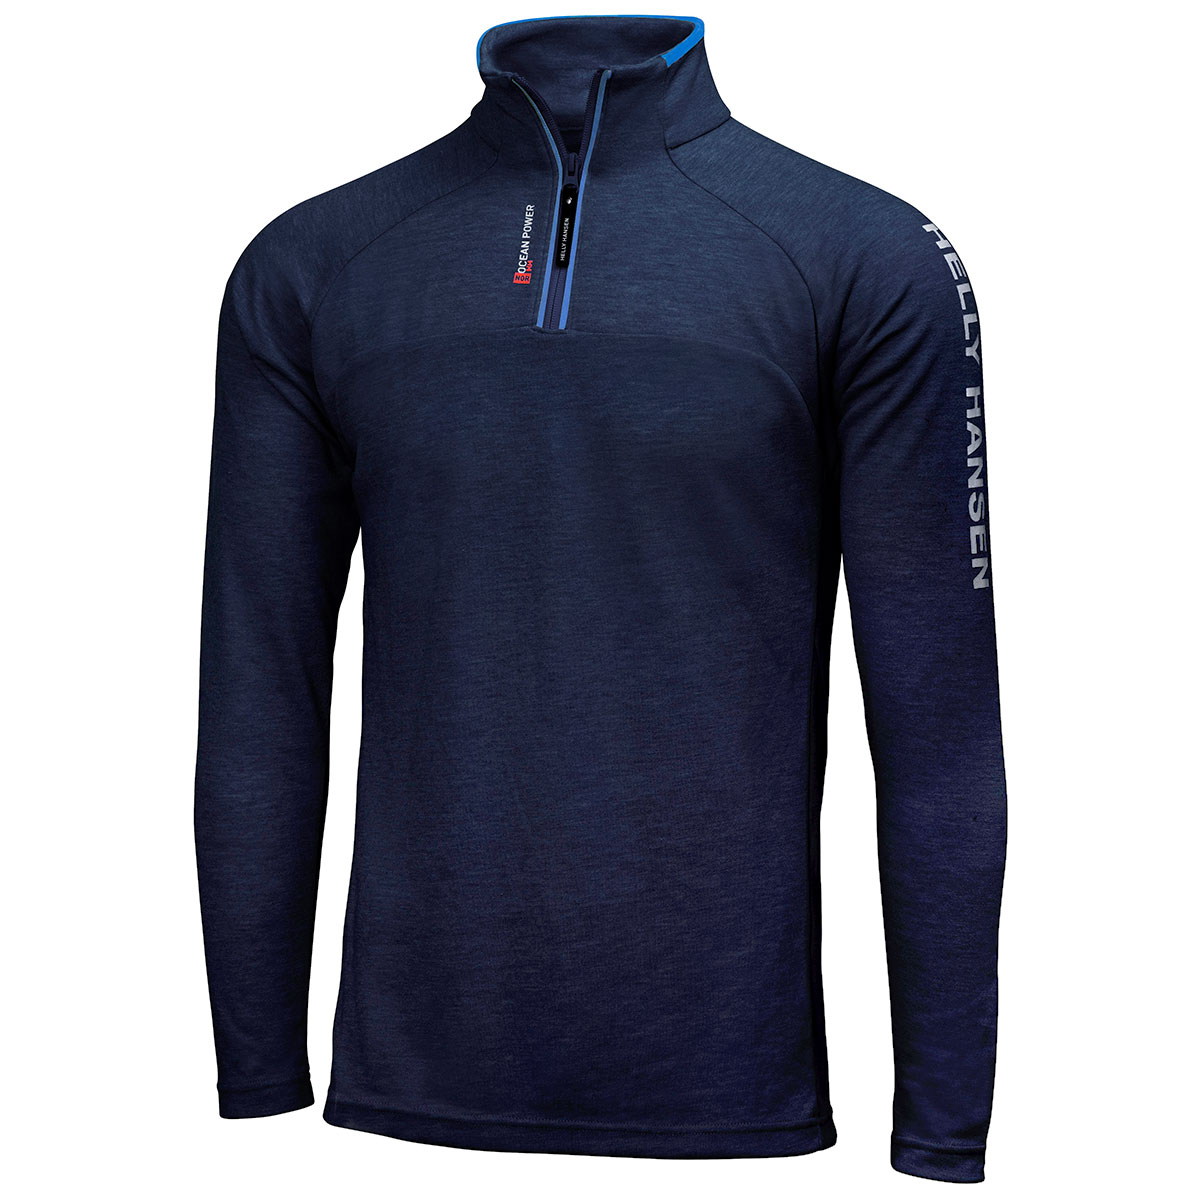 Helly hansen 2017 mens hp half zip pullover fitted stretch sweater helly hansen 2017 mens hp half zip pullover malvernweather Image collections